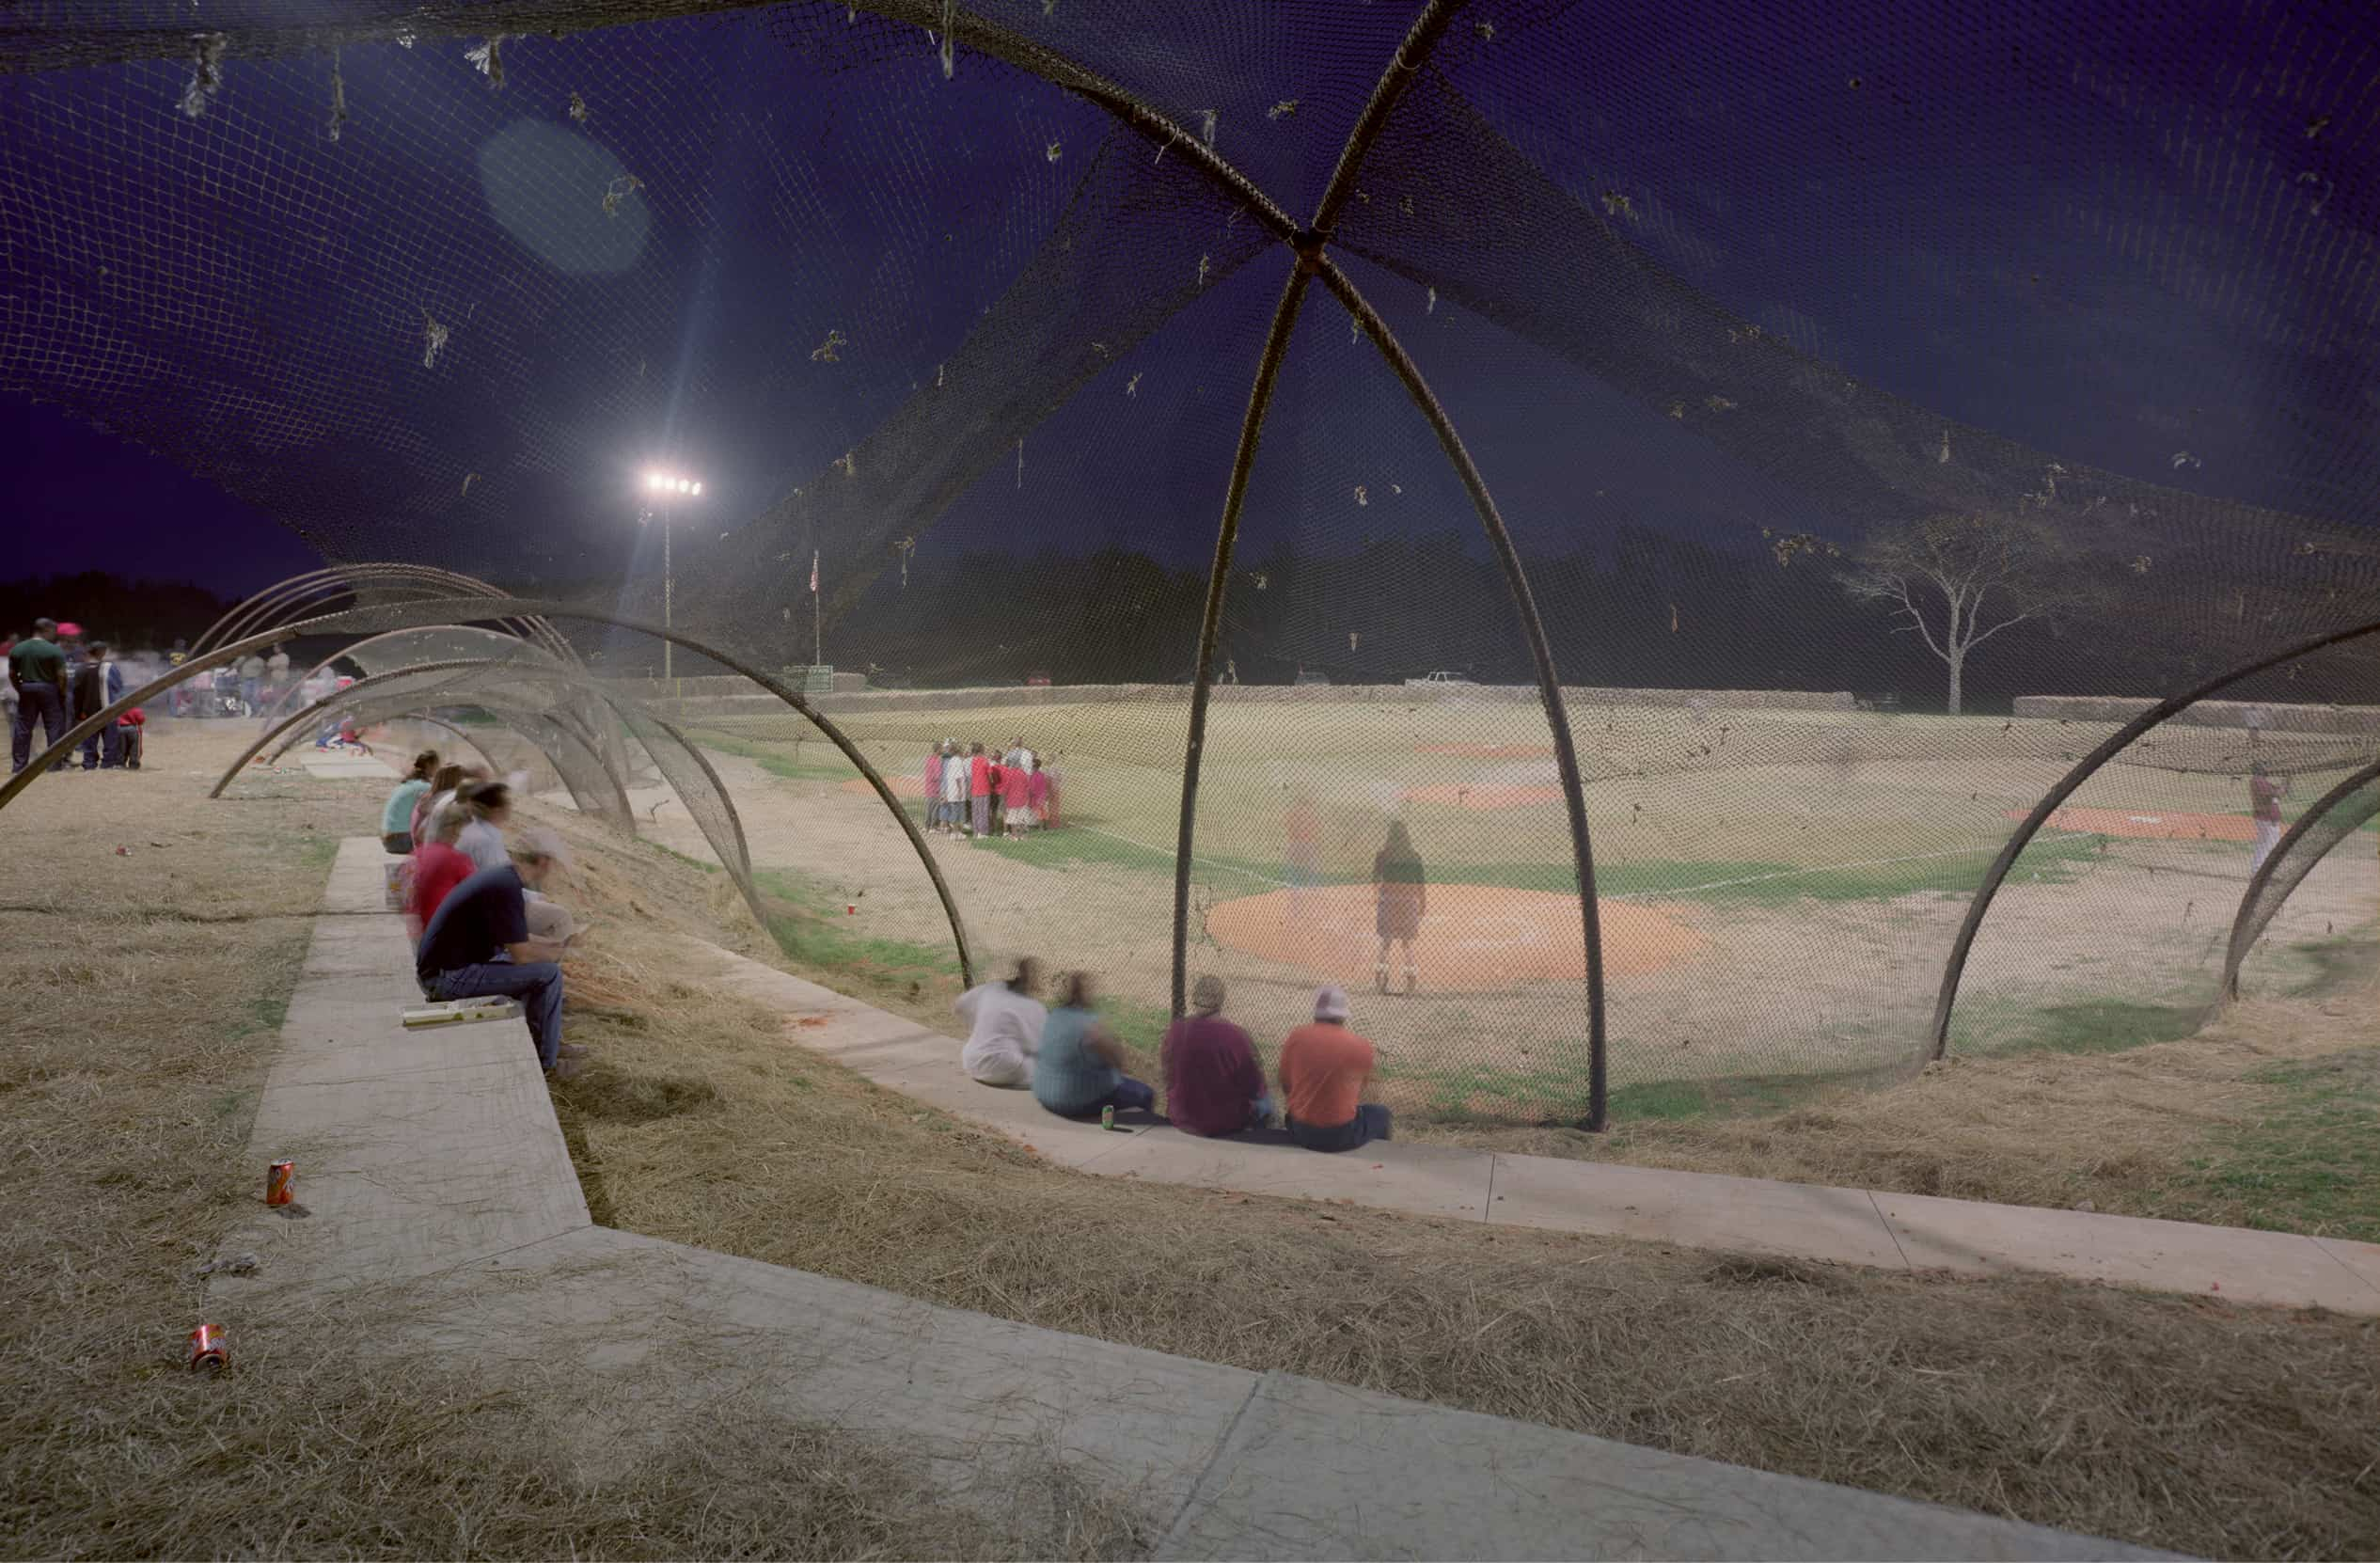 night time at the baseball fields